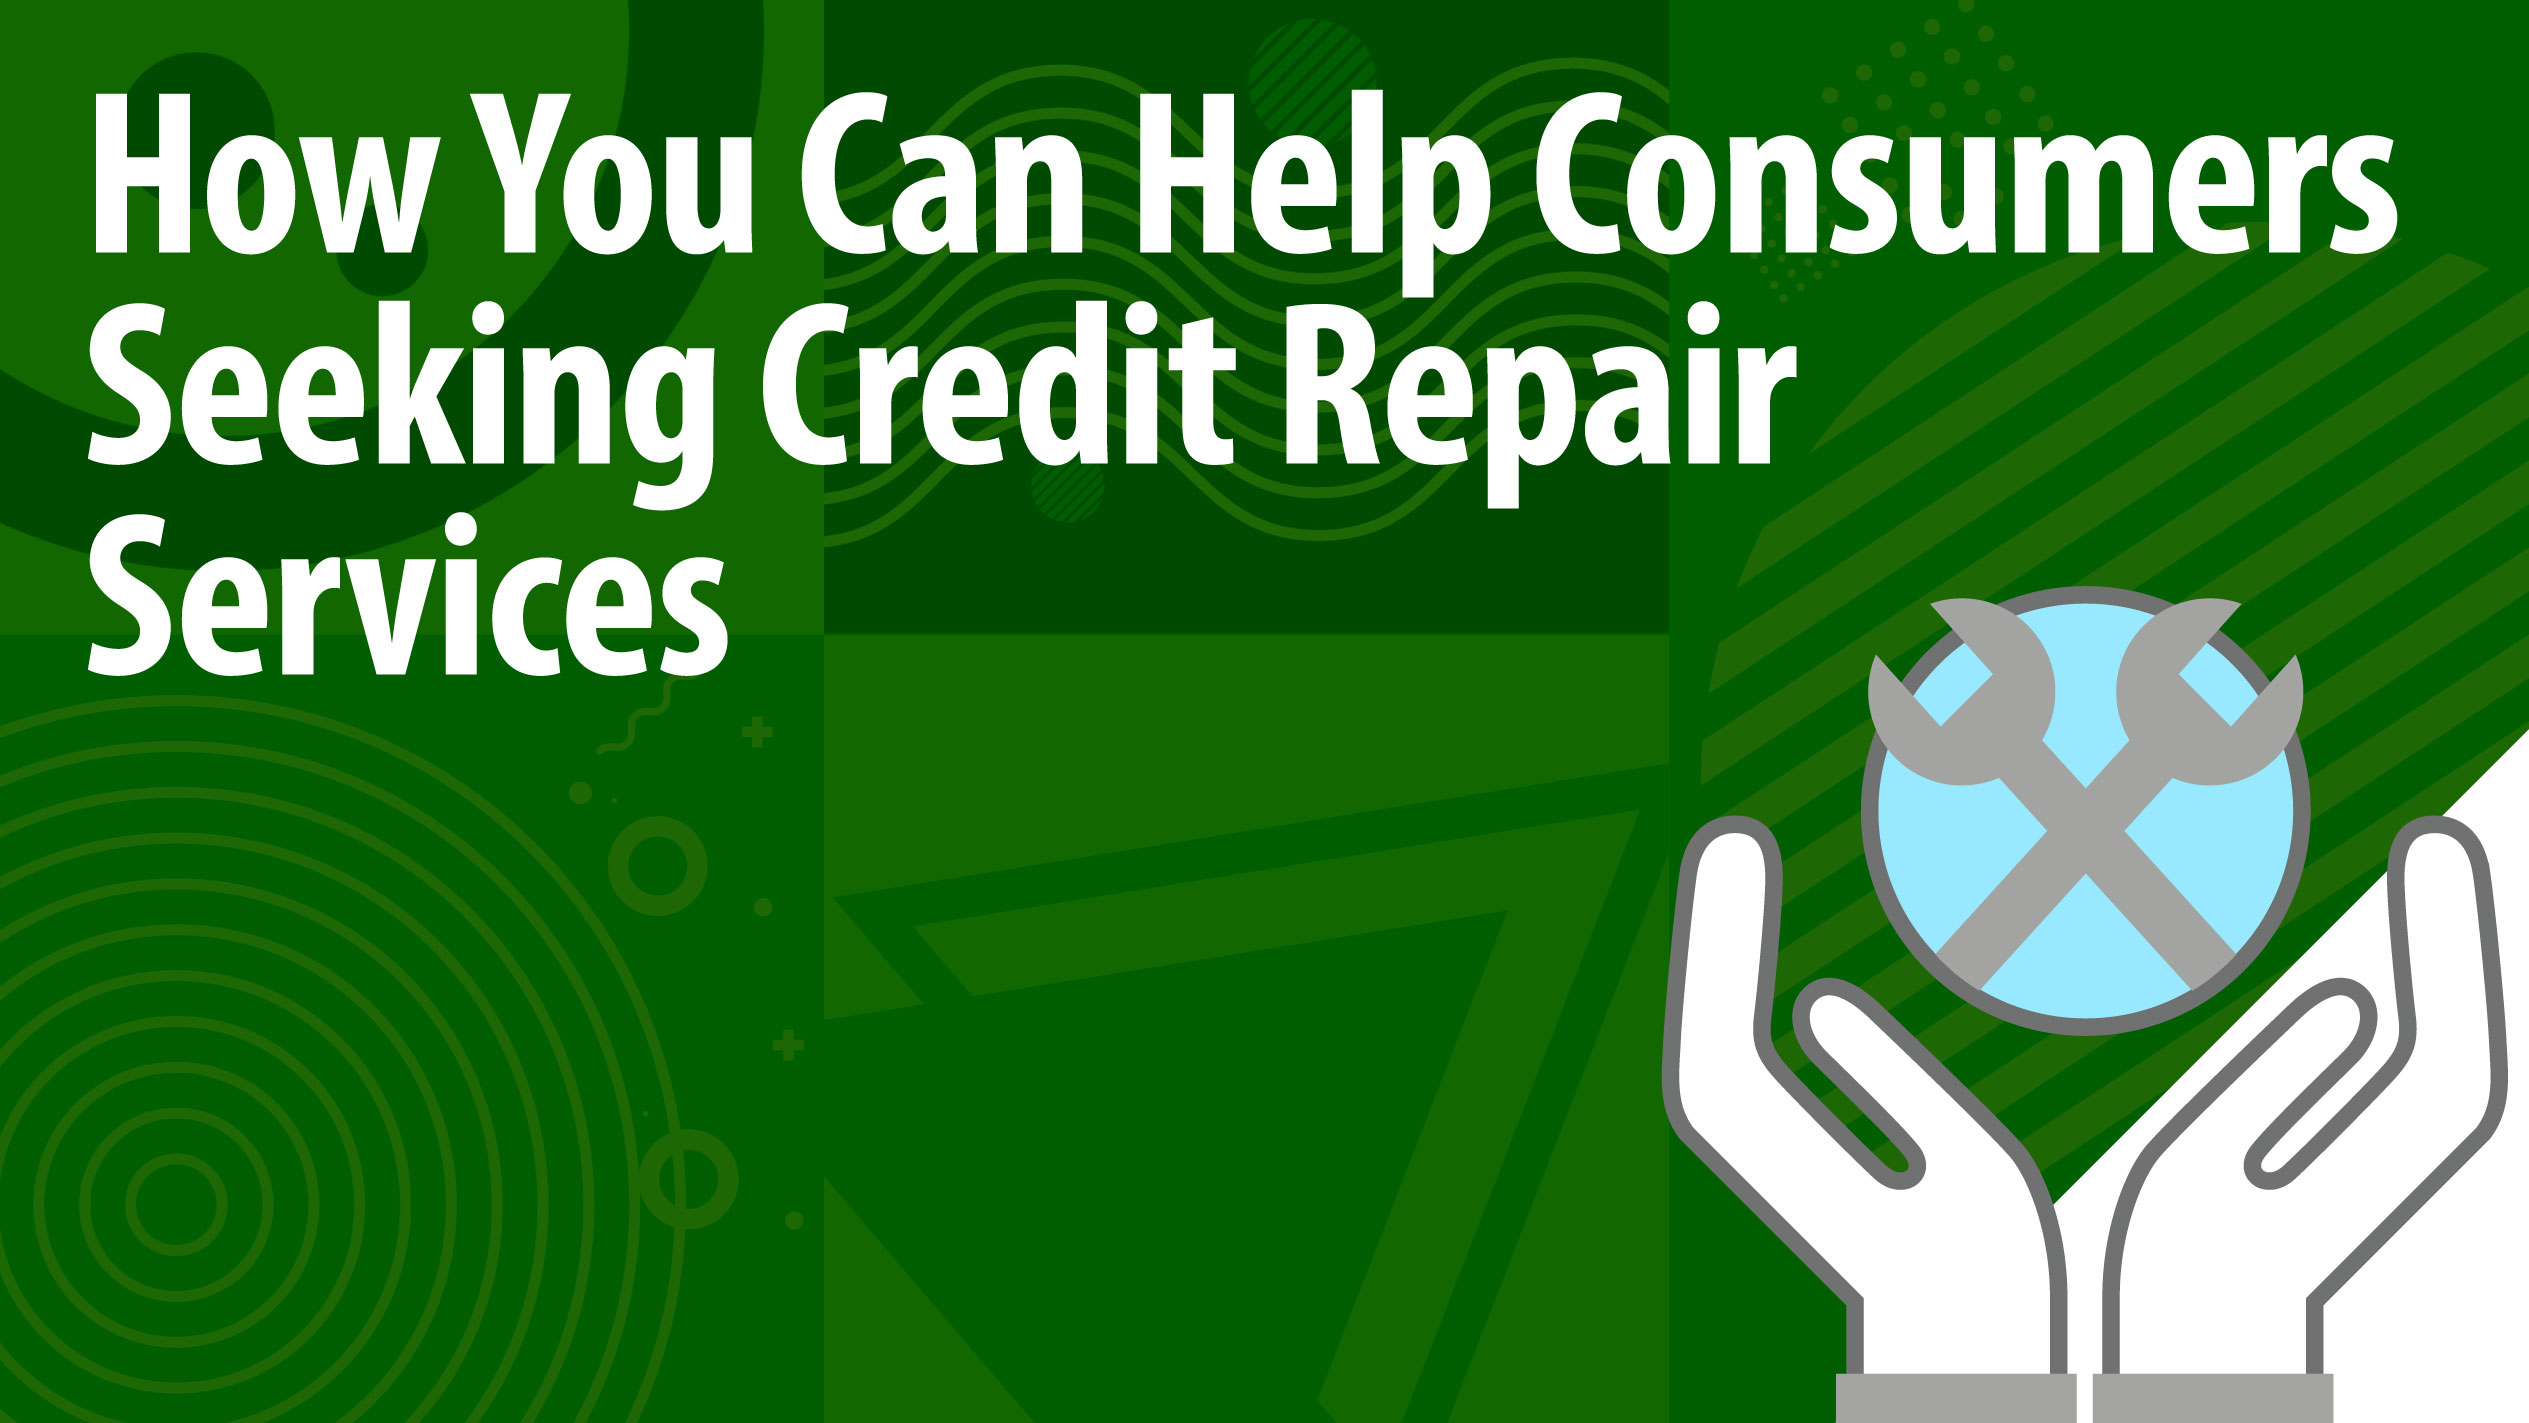 How You Can Help Consumers Seeking Credit Repair Services